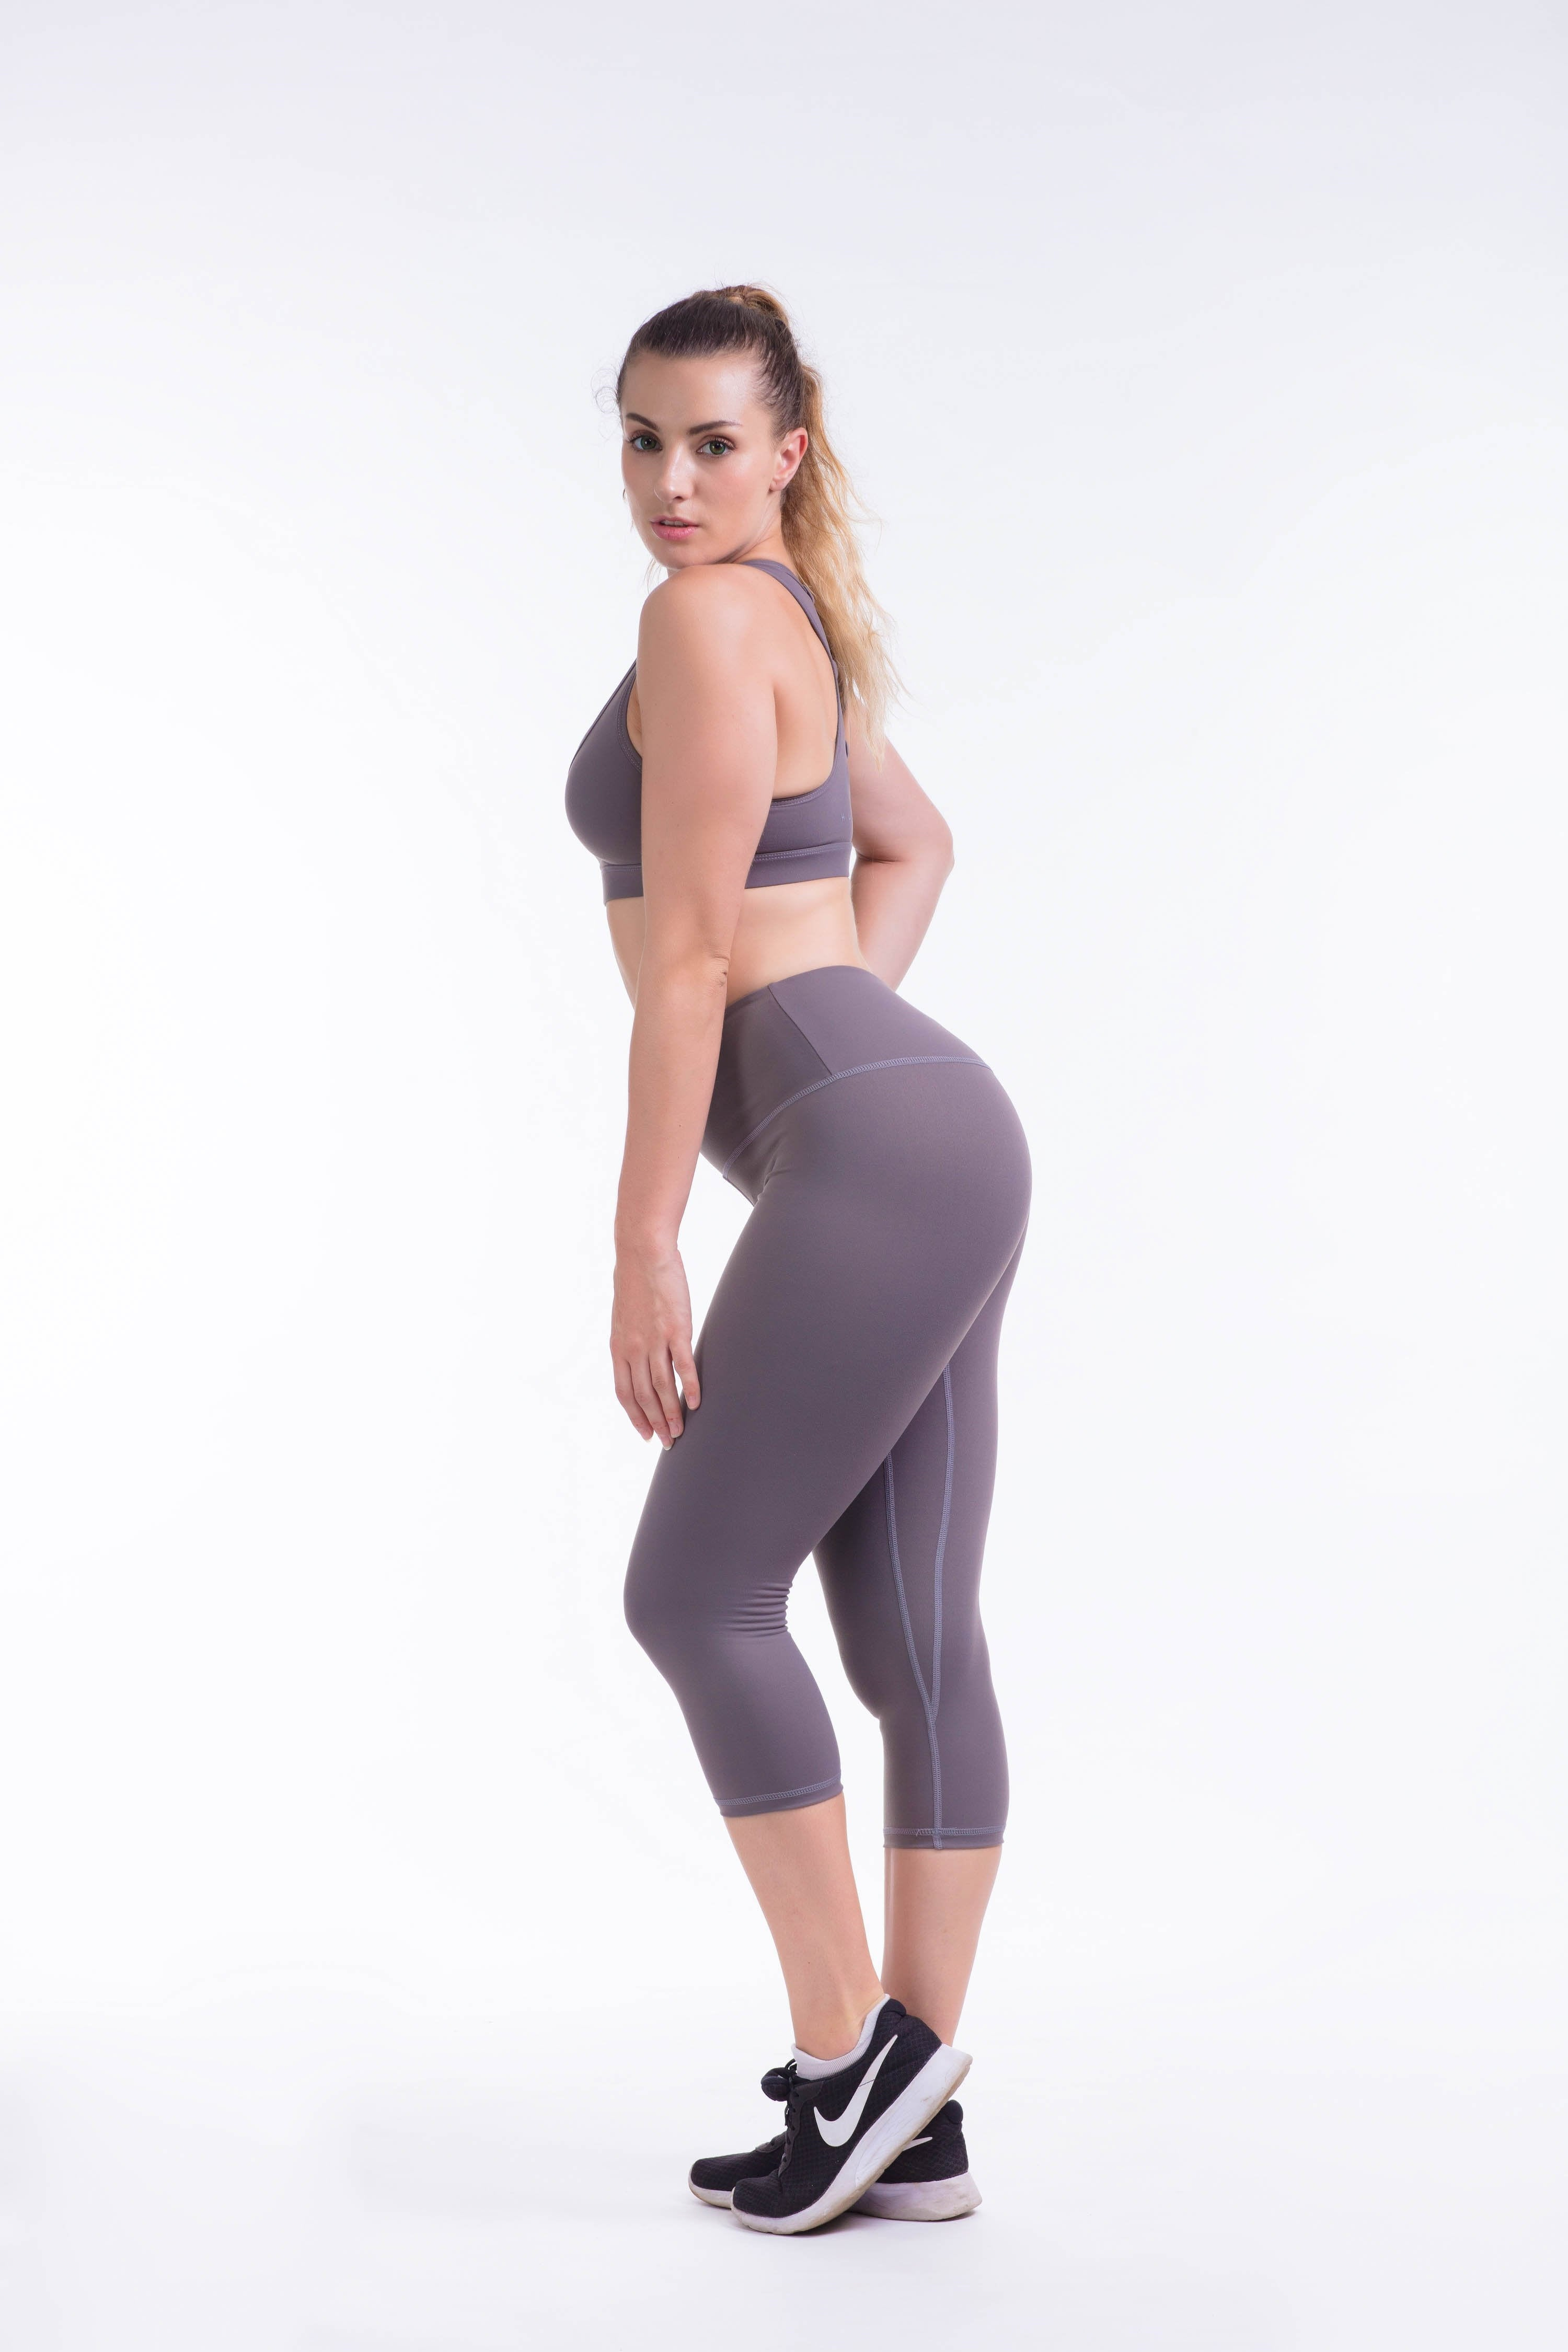 "BARE IN MIND CROP 19"" - GREY - hustletics.com"